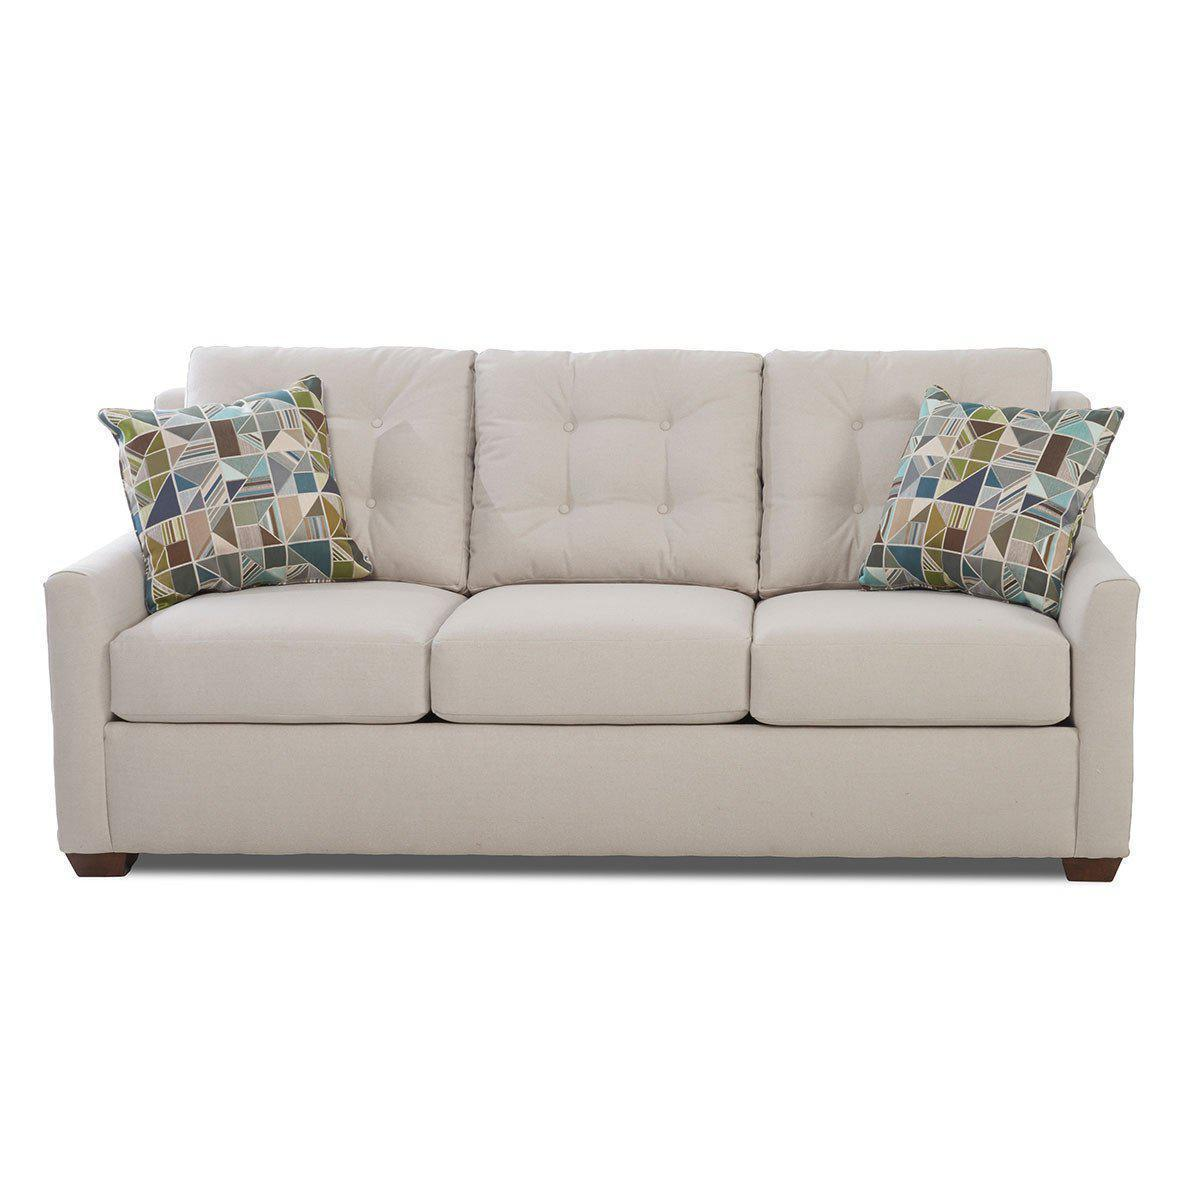 "Adara Sofa Sleeper (72"")"